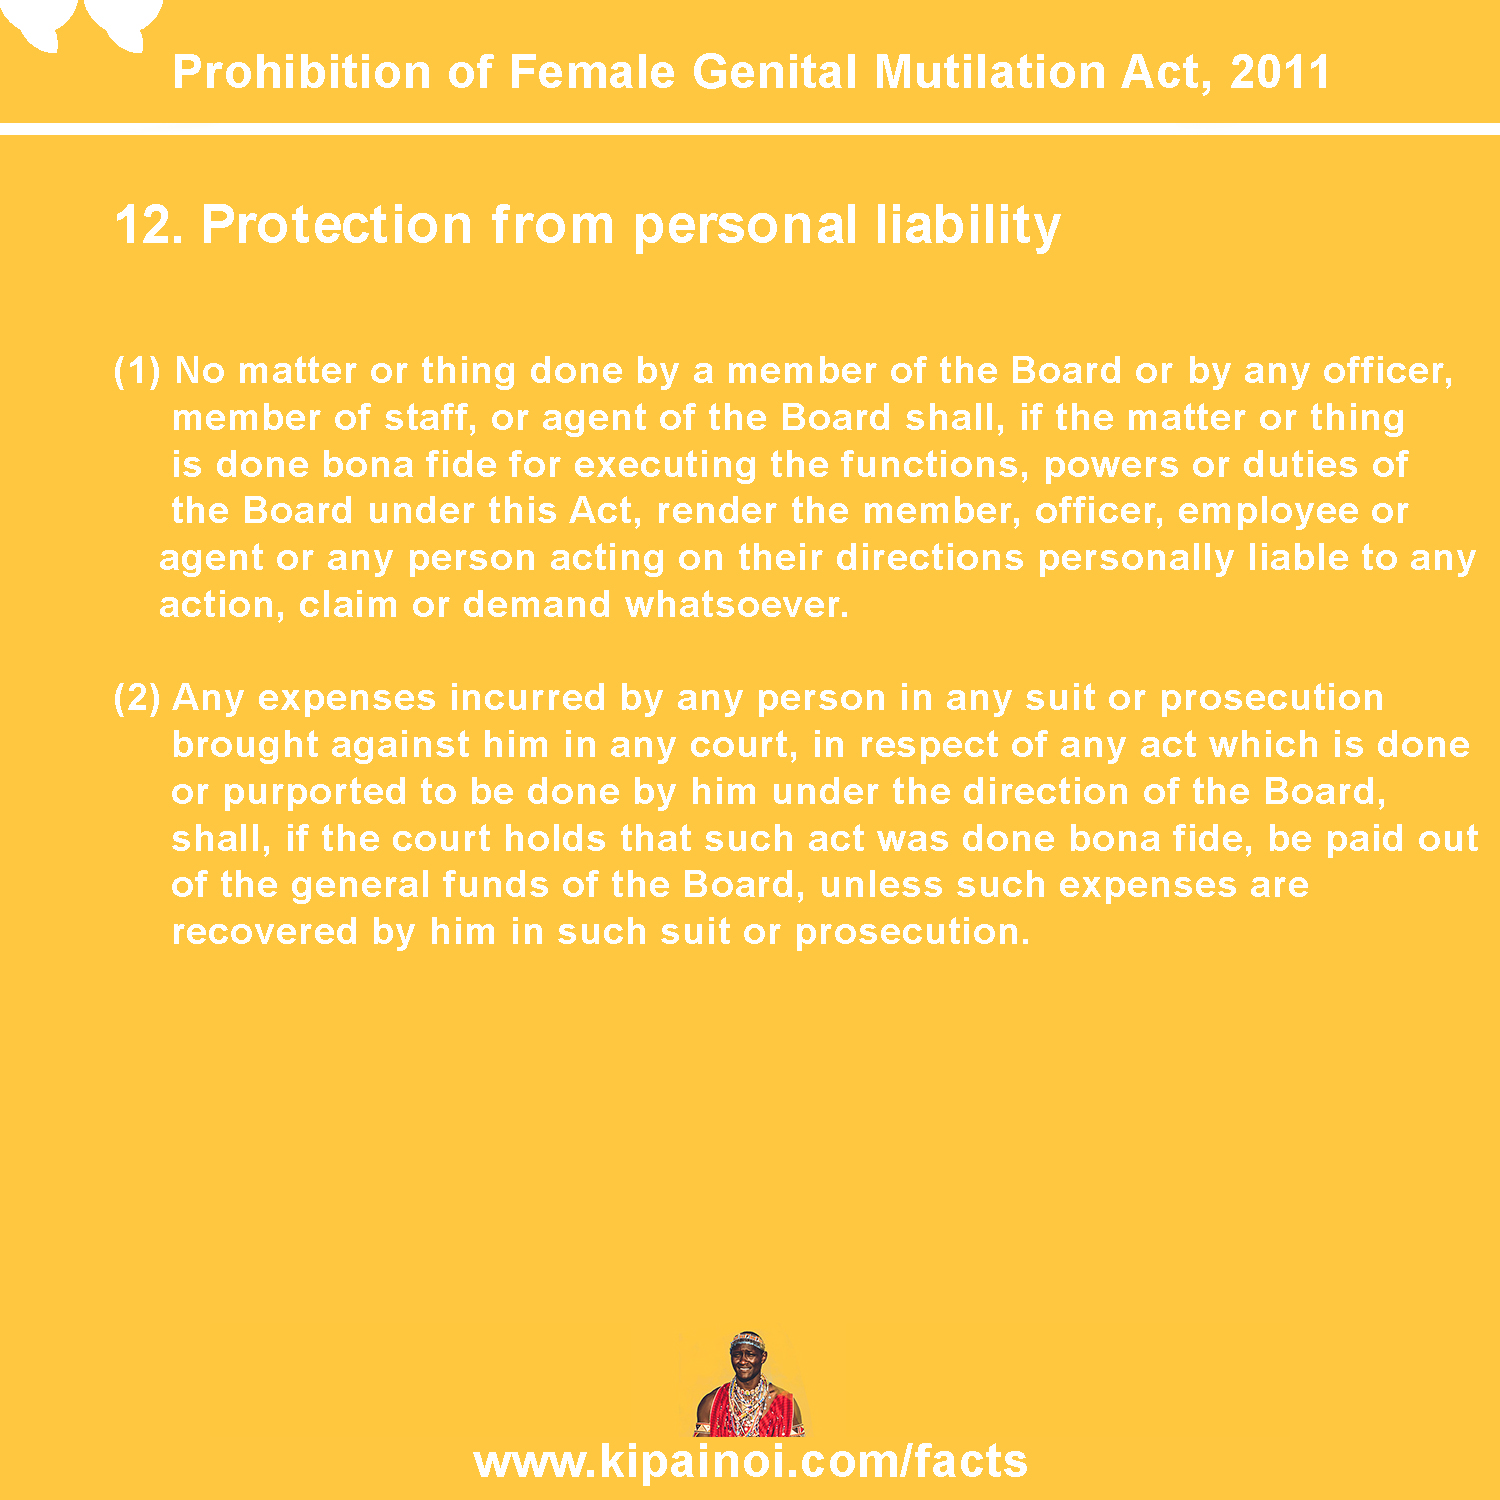 12. Protection from personal liability